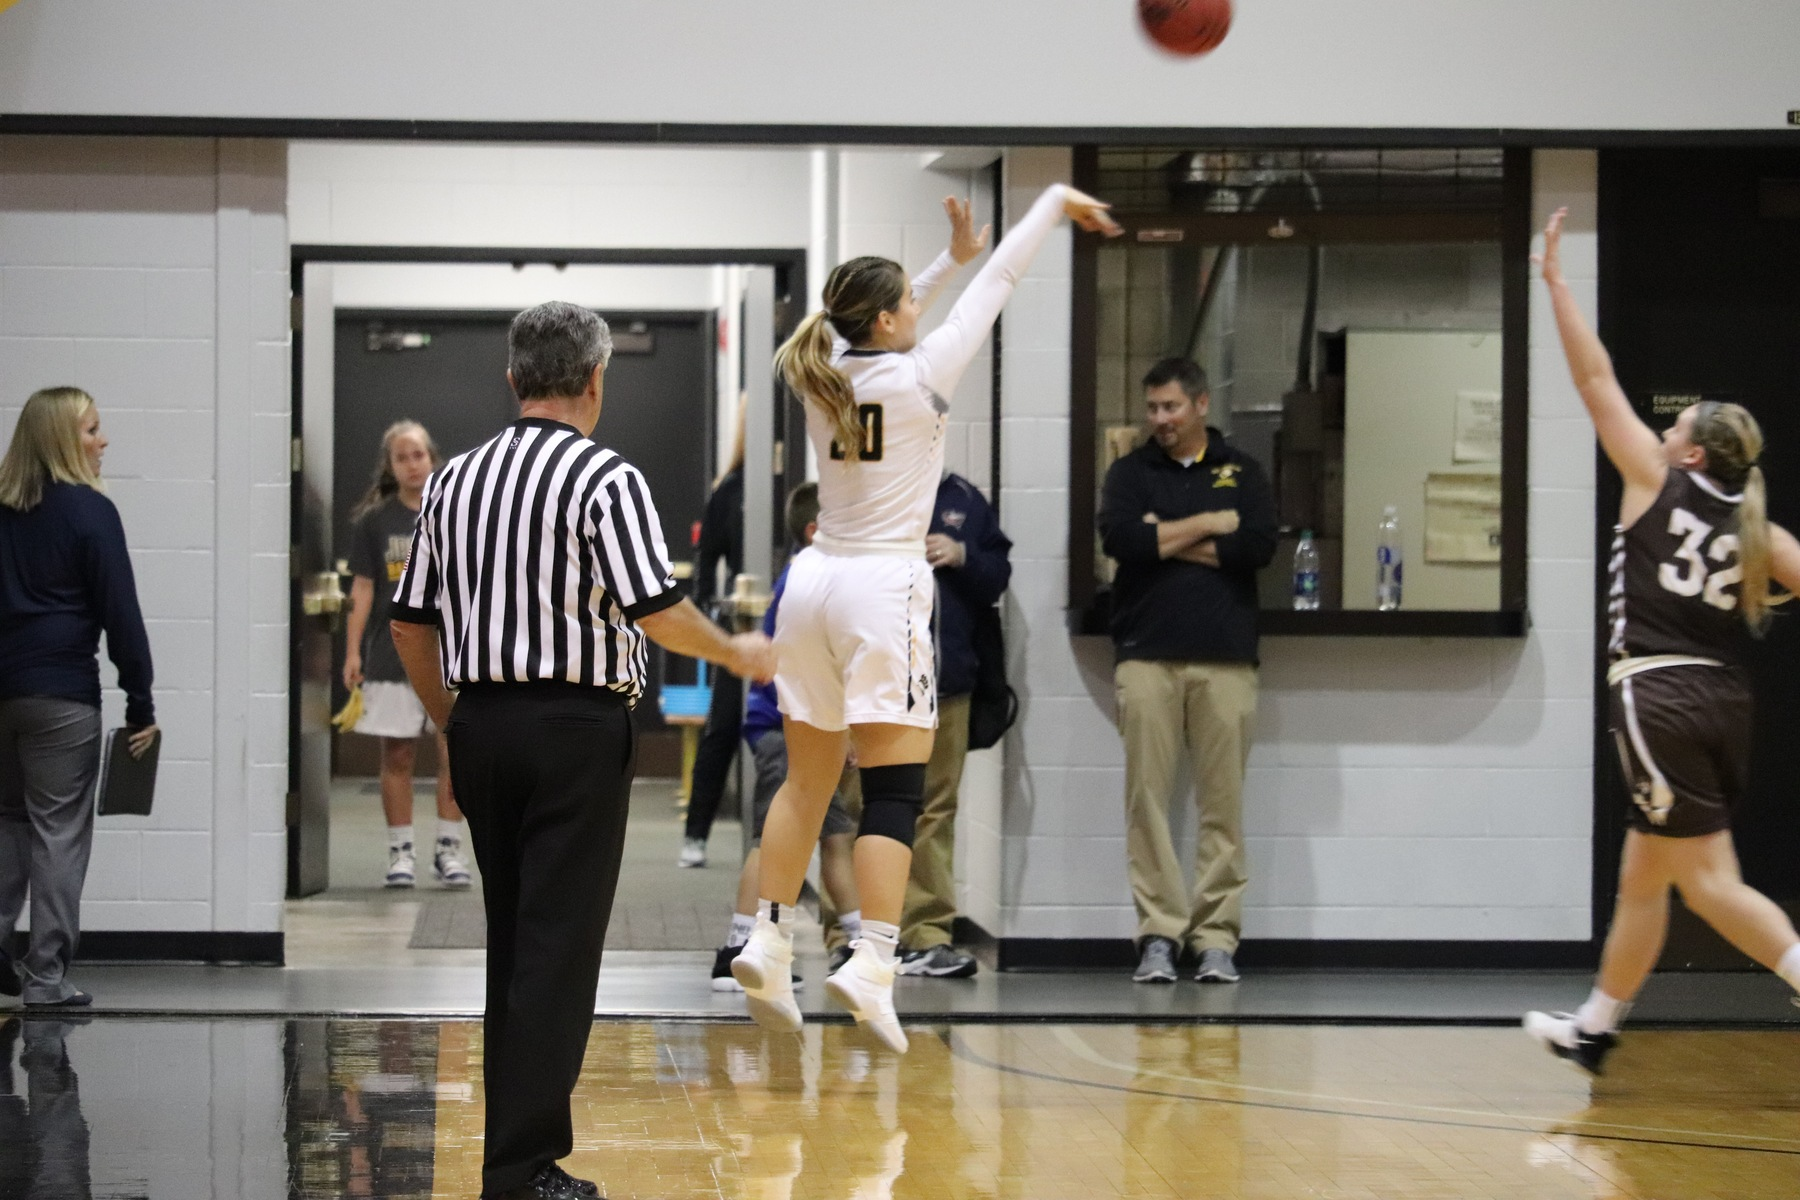 Fisher's Jumper Lifts Women's Basketball To 72-70 Win At Saginaw Valley